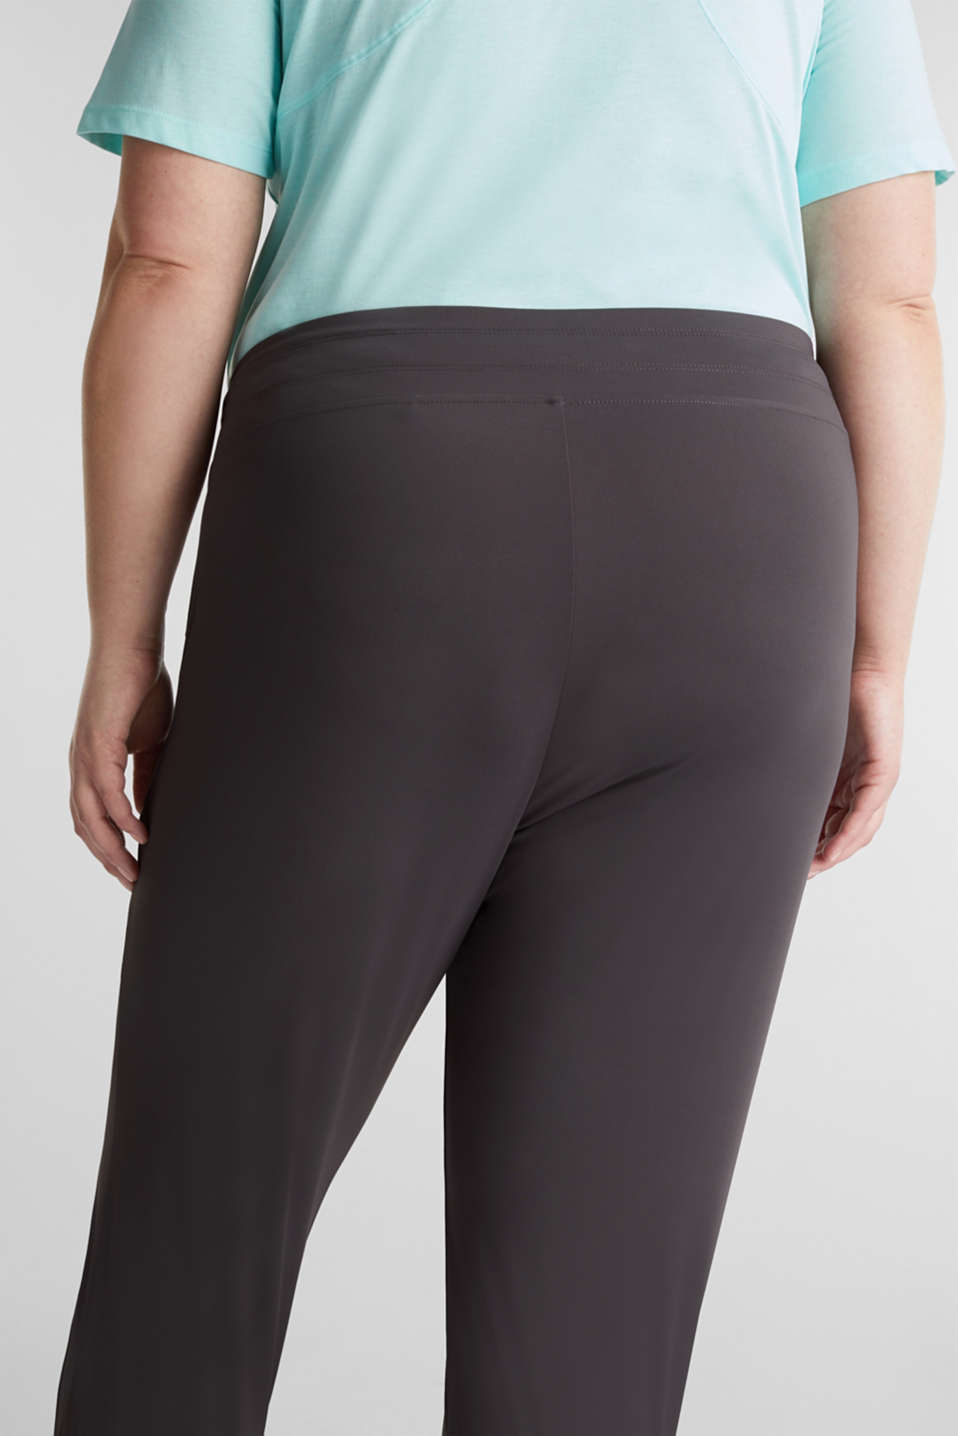 CURVY ankle-length leggings, E-DRY, ANTHRACITE, detail image number 5